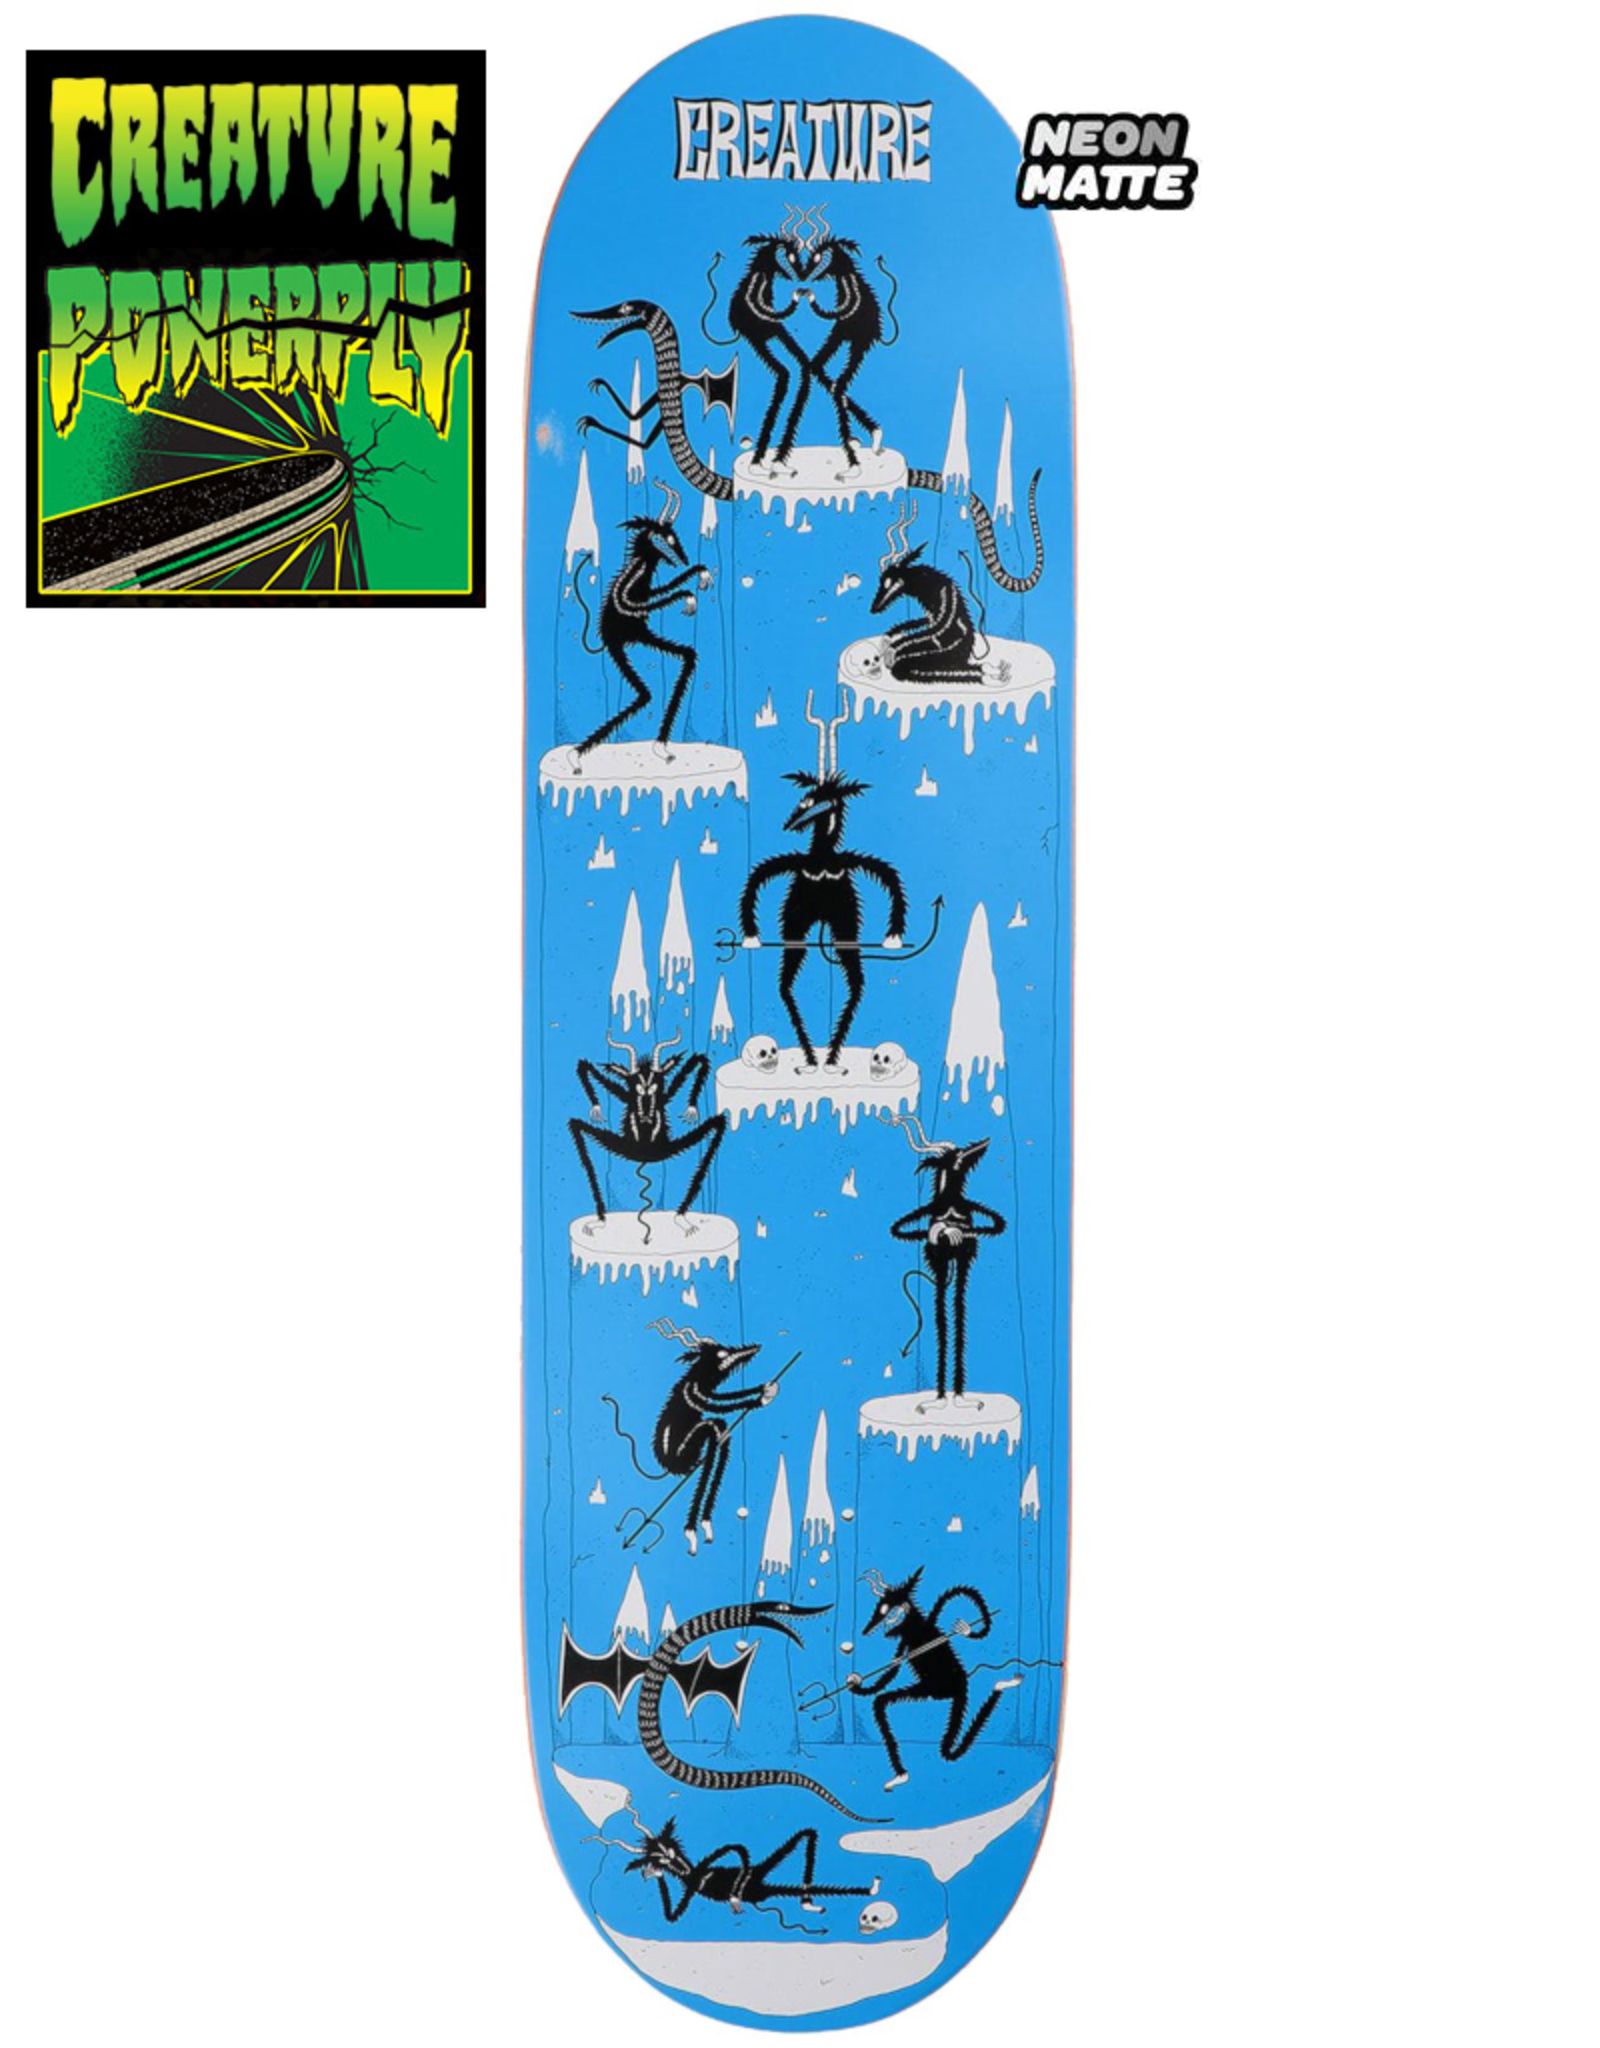 "Creature CREATURE FREE FOR ALL 8.5"" DECK"